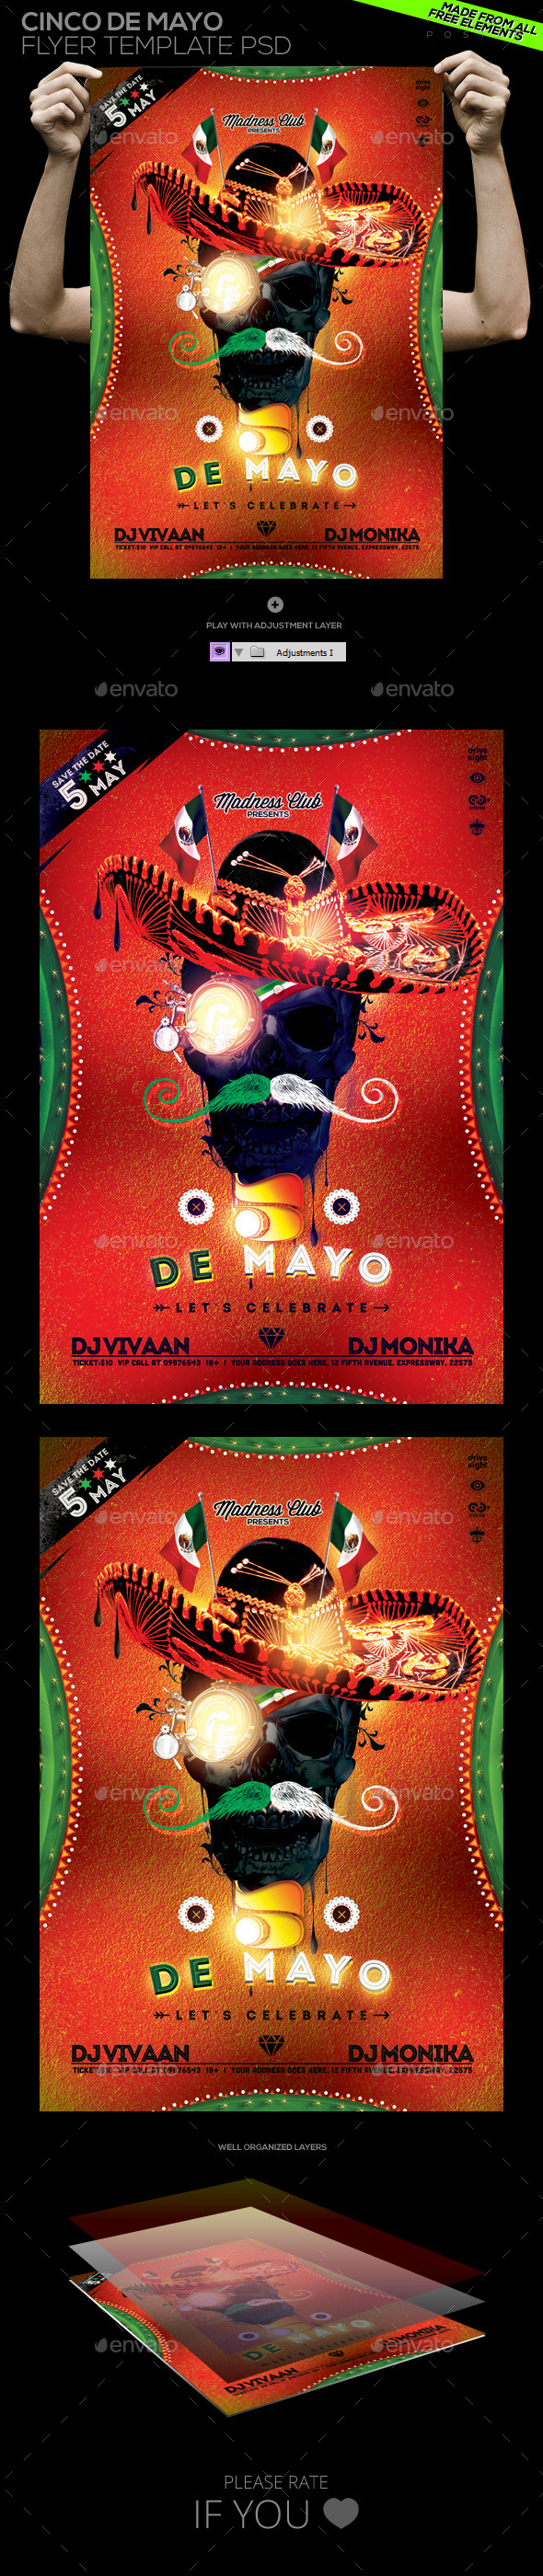 GraphicRiver Cinco de Mayo Flyer Poster 11202726